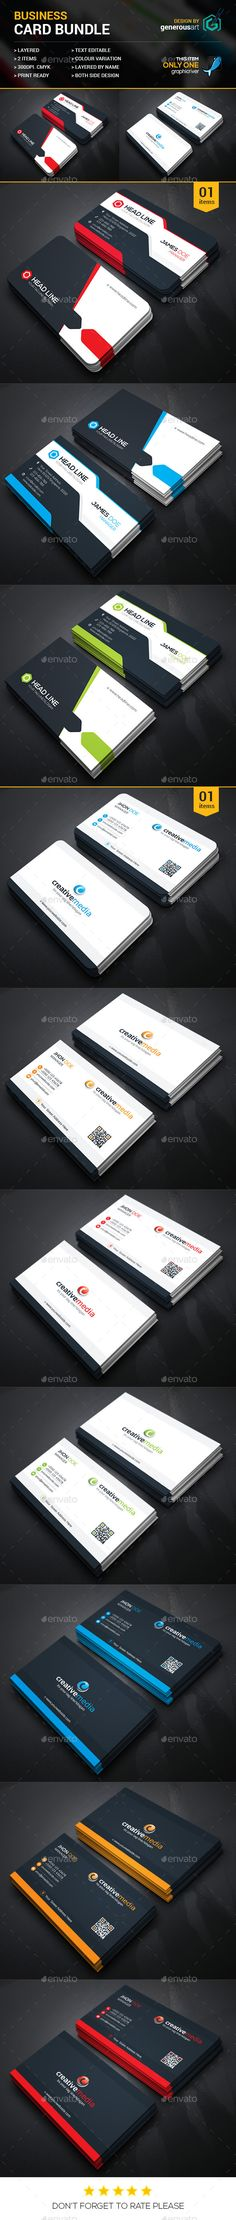 Business Card Bundle 2 in 1 - Corporate Business Cards Download here : http://graphicriver.net/item/business-card-bundle-2-in-1/12071361?s_rank=1751&ref=Al-fatih